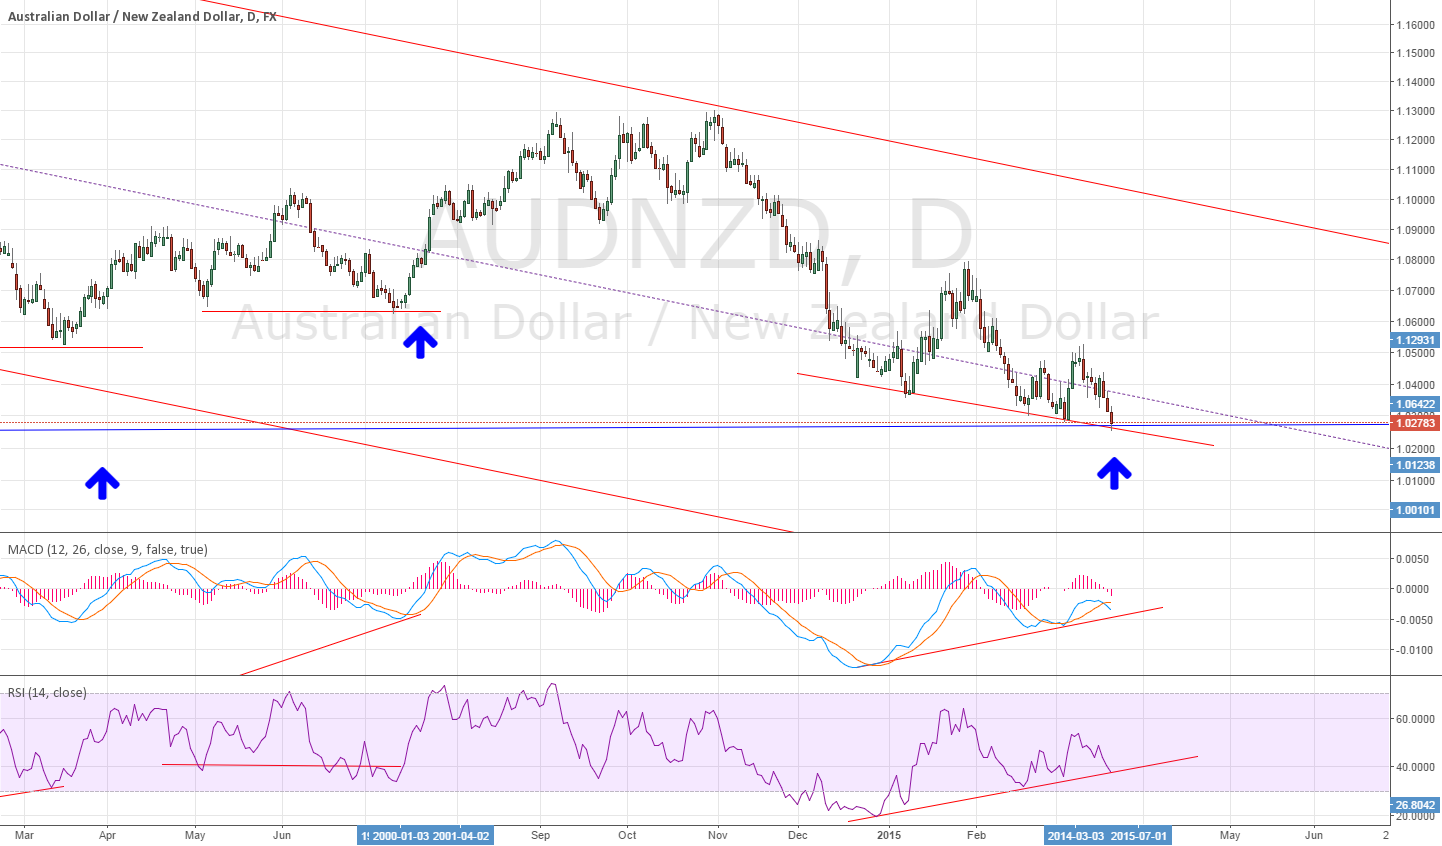 Daily for AUDNZD divergence ~